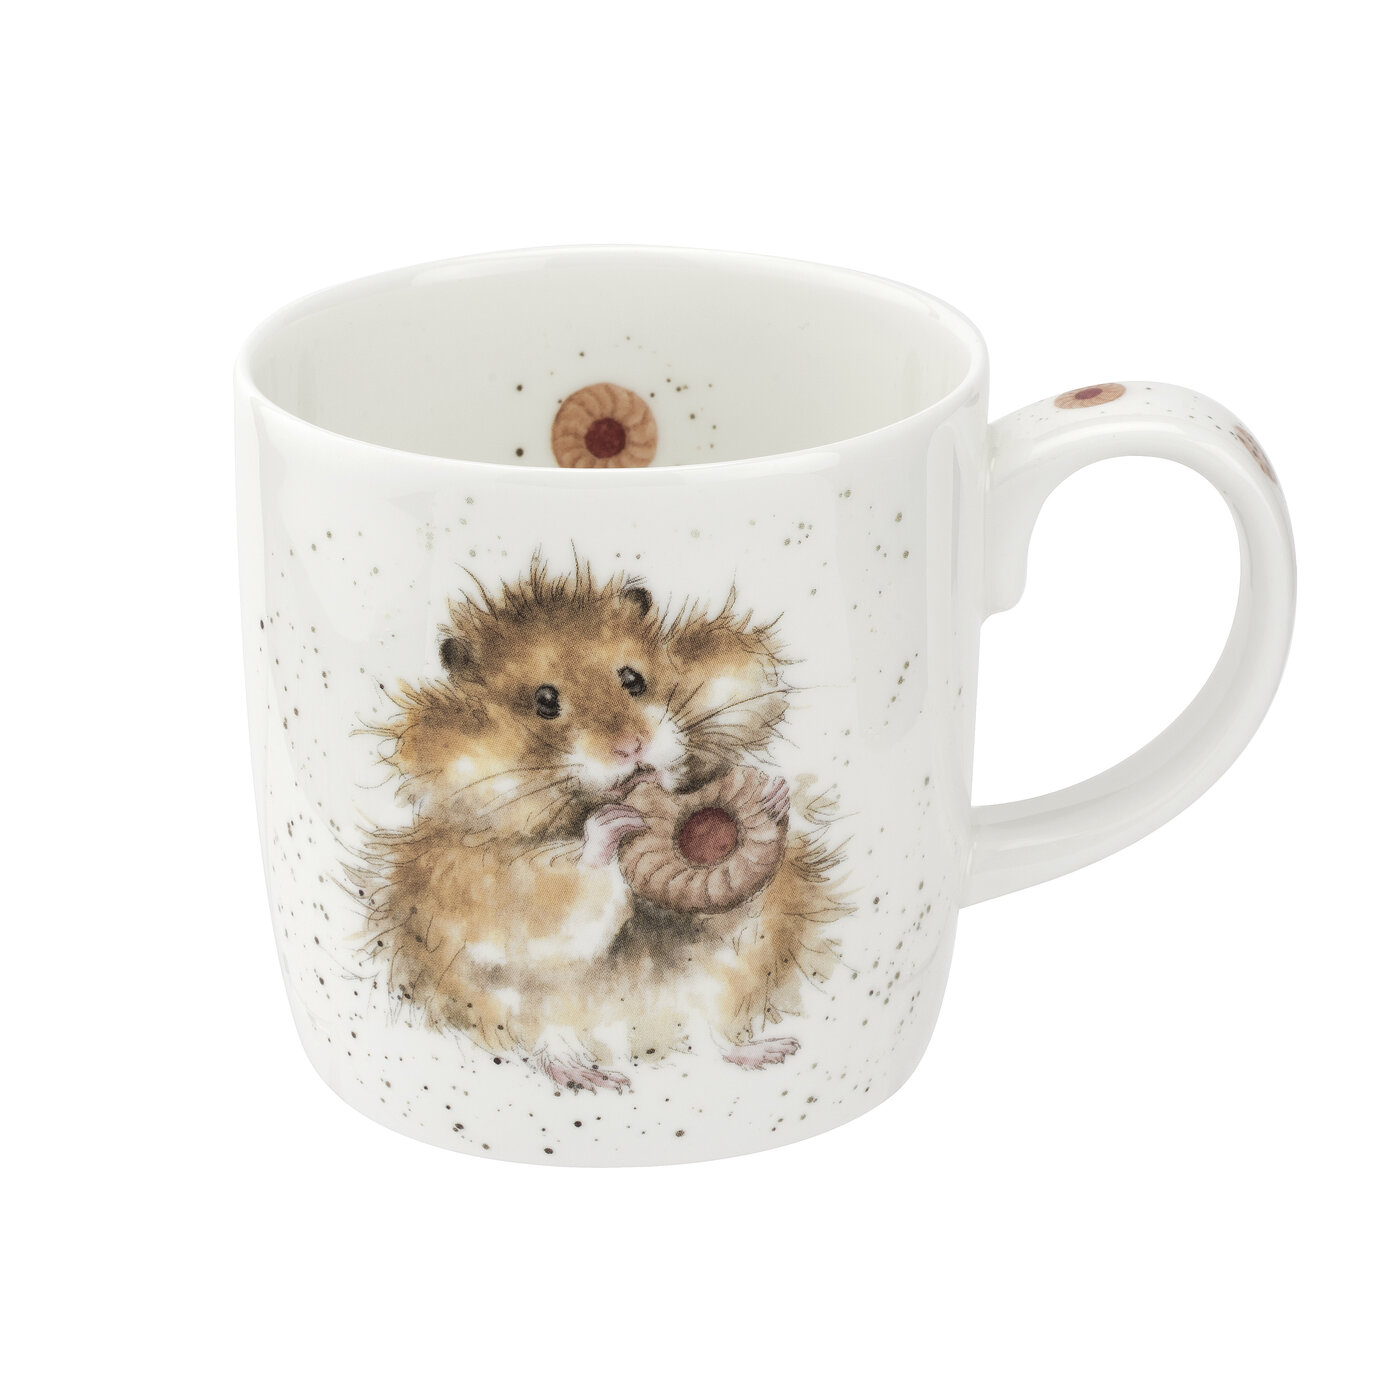 Royal Worcester Wrendale Designs MUG 14 OZ DIET STARTS TOMORROW (HAMSTER) image number 0